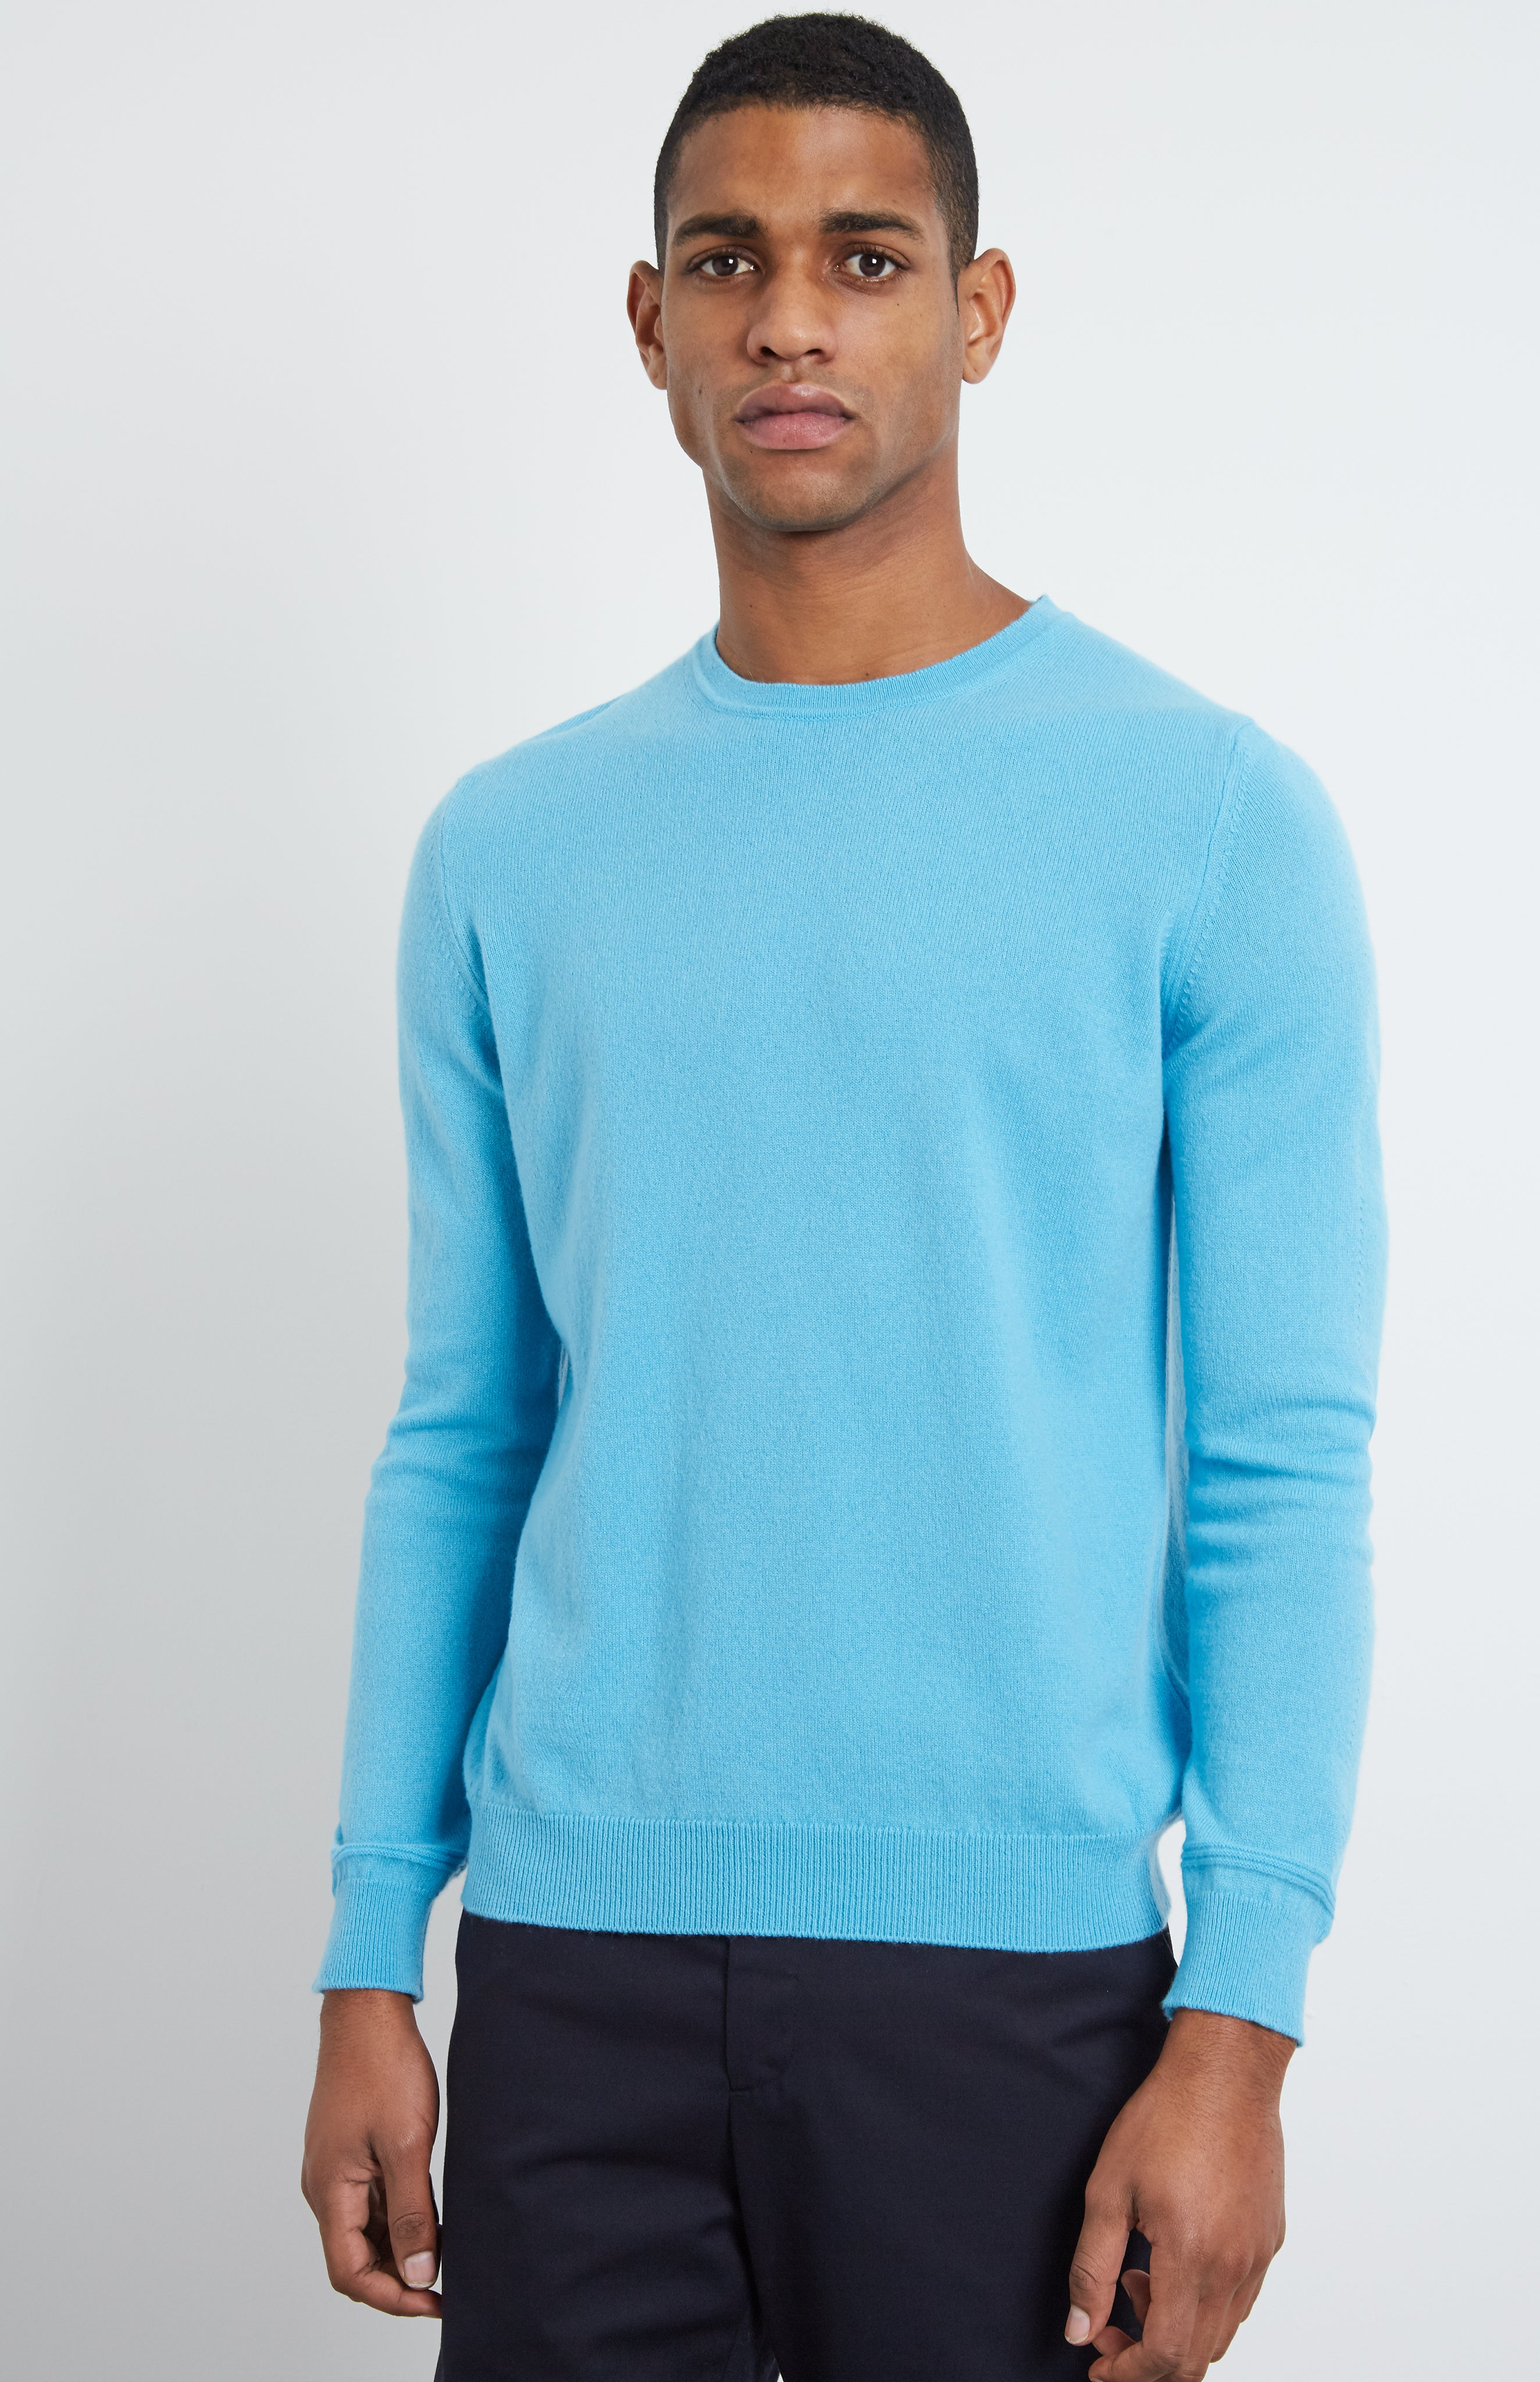 Men's Scottish Cashmere Round Neck Jumper In Pool Blue